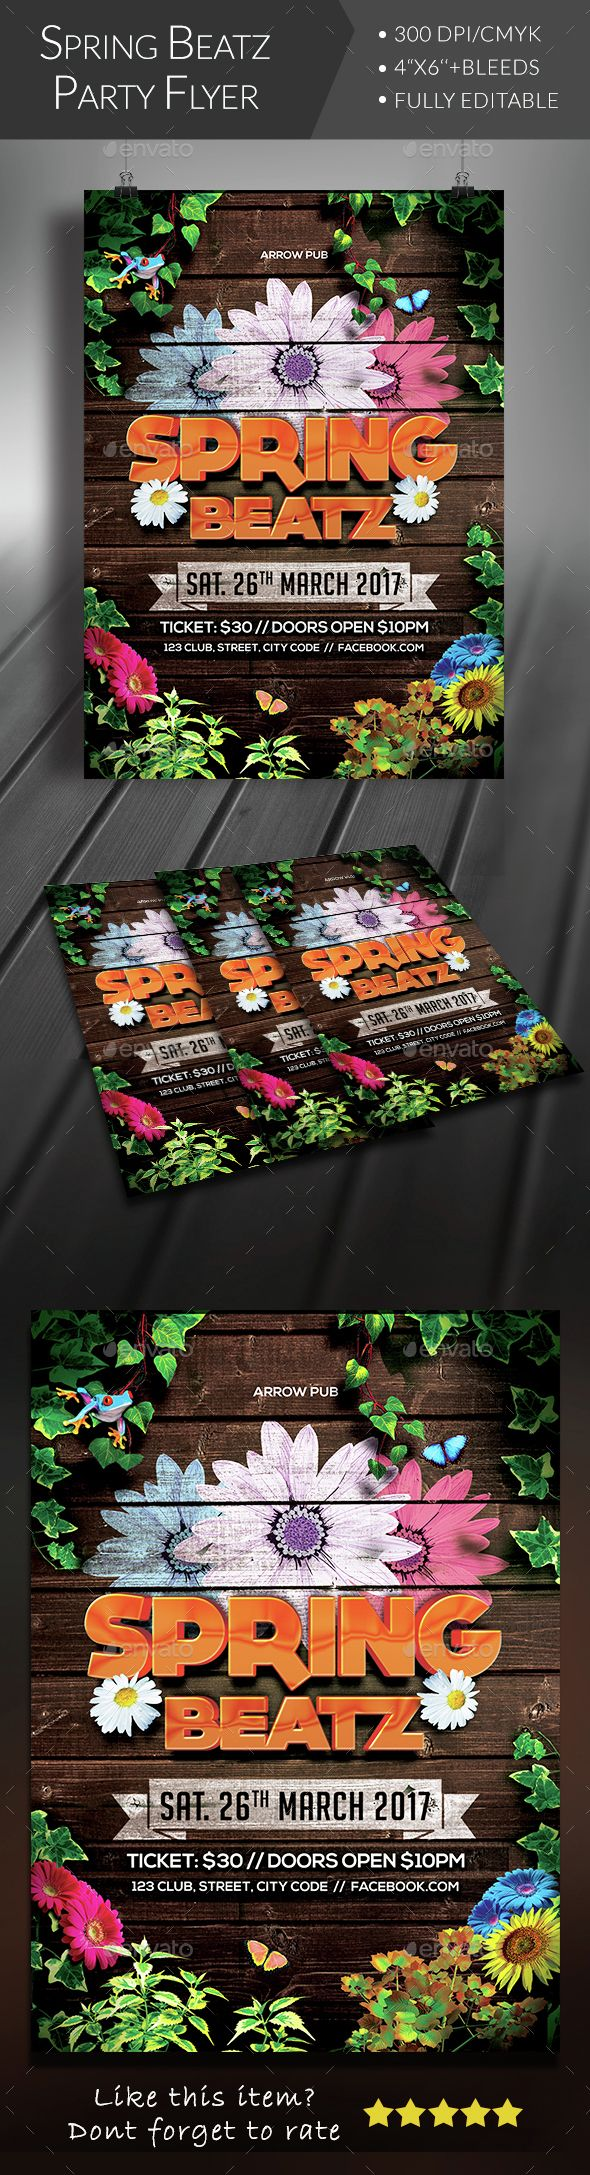 Spring Party Flyer #birds #break #butterfly • Available here → http://graphicriver.net/item/spring-party-flyer/15147796?s_rank=229&ref=pxcr